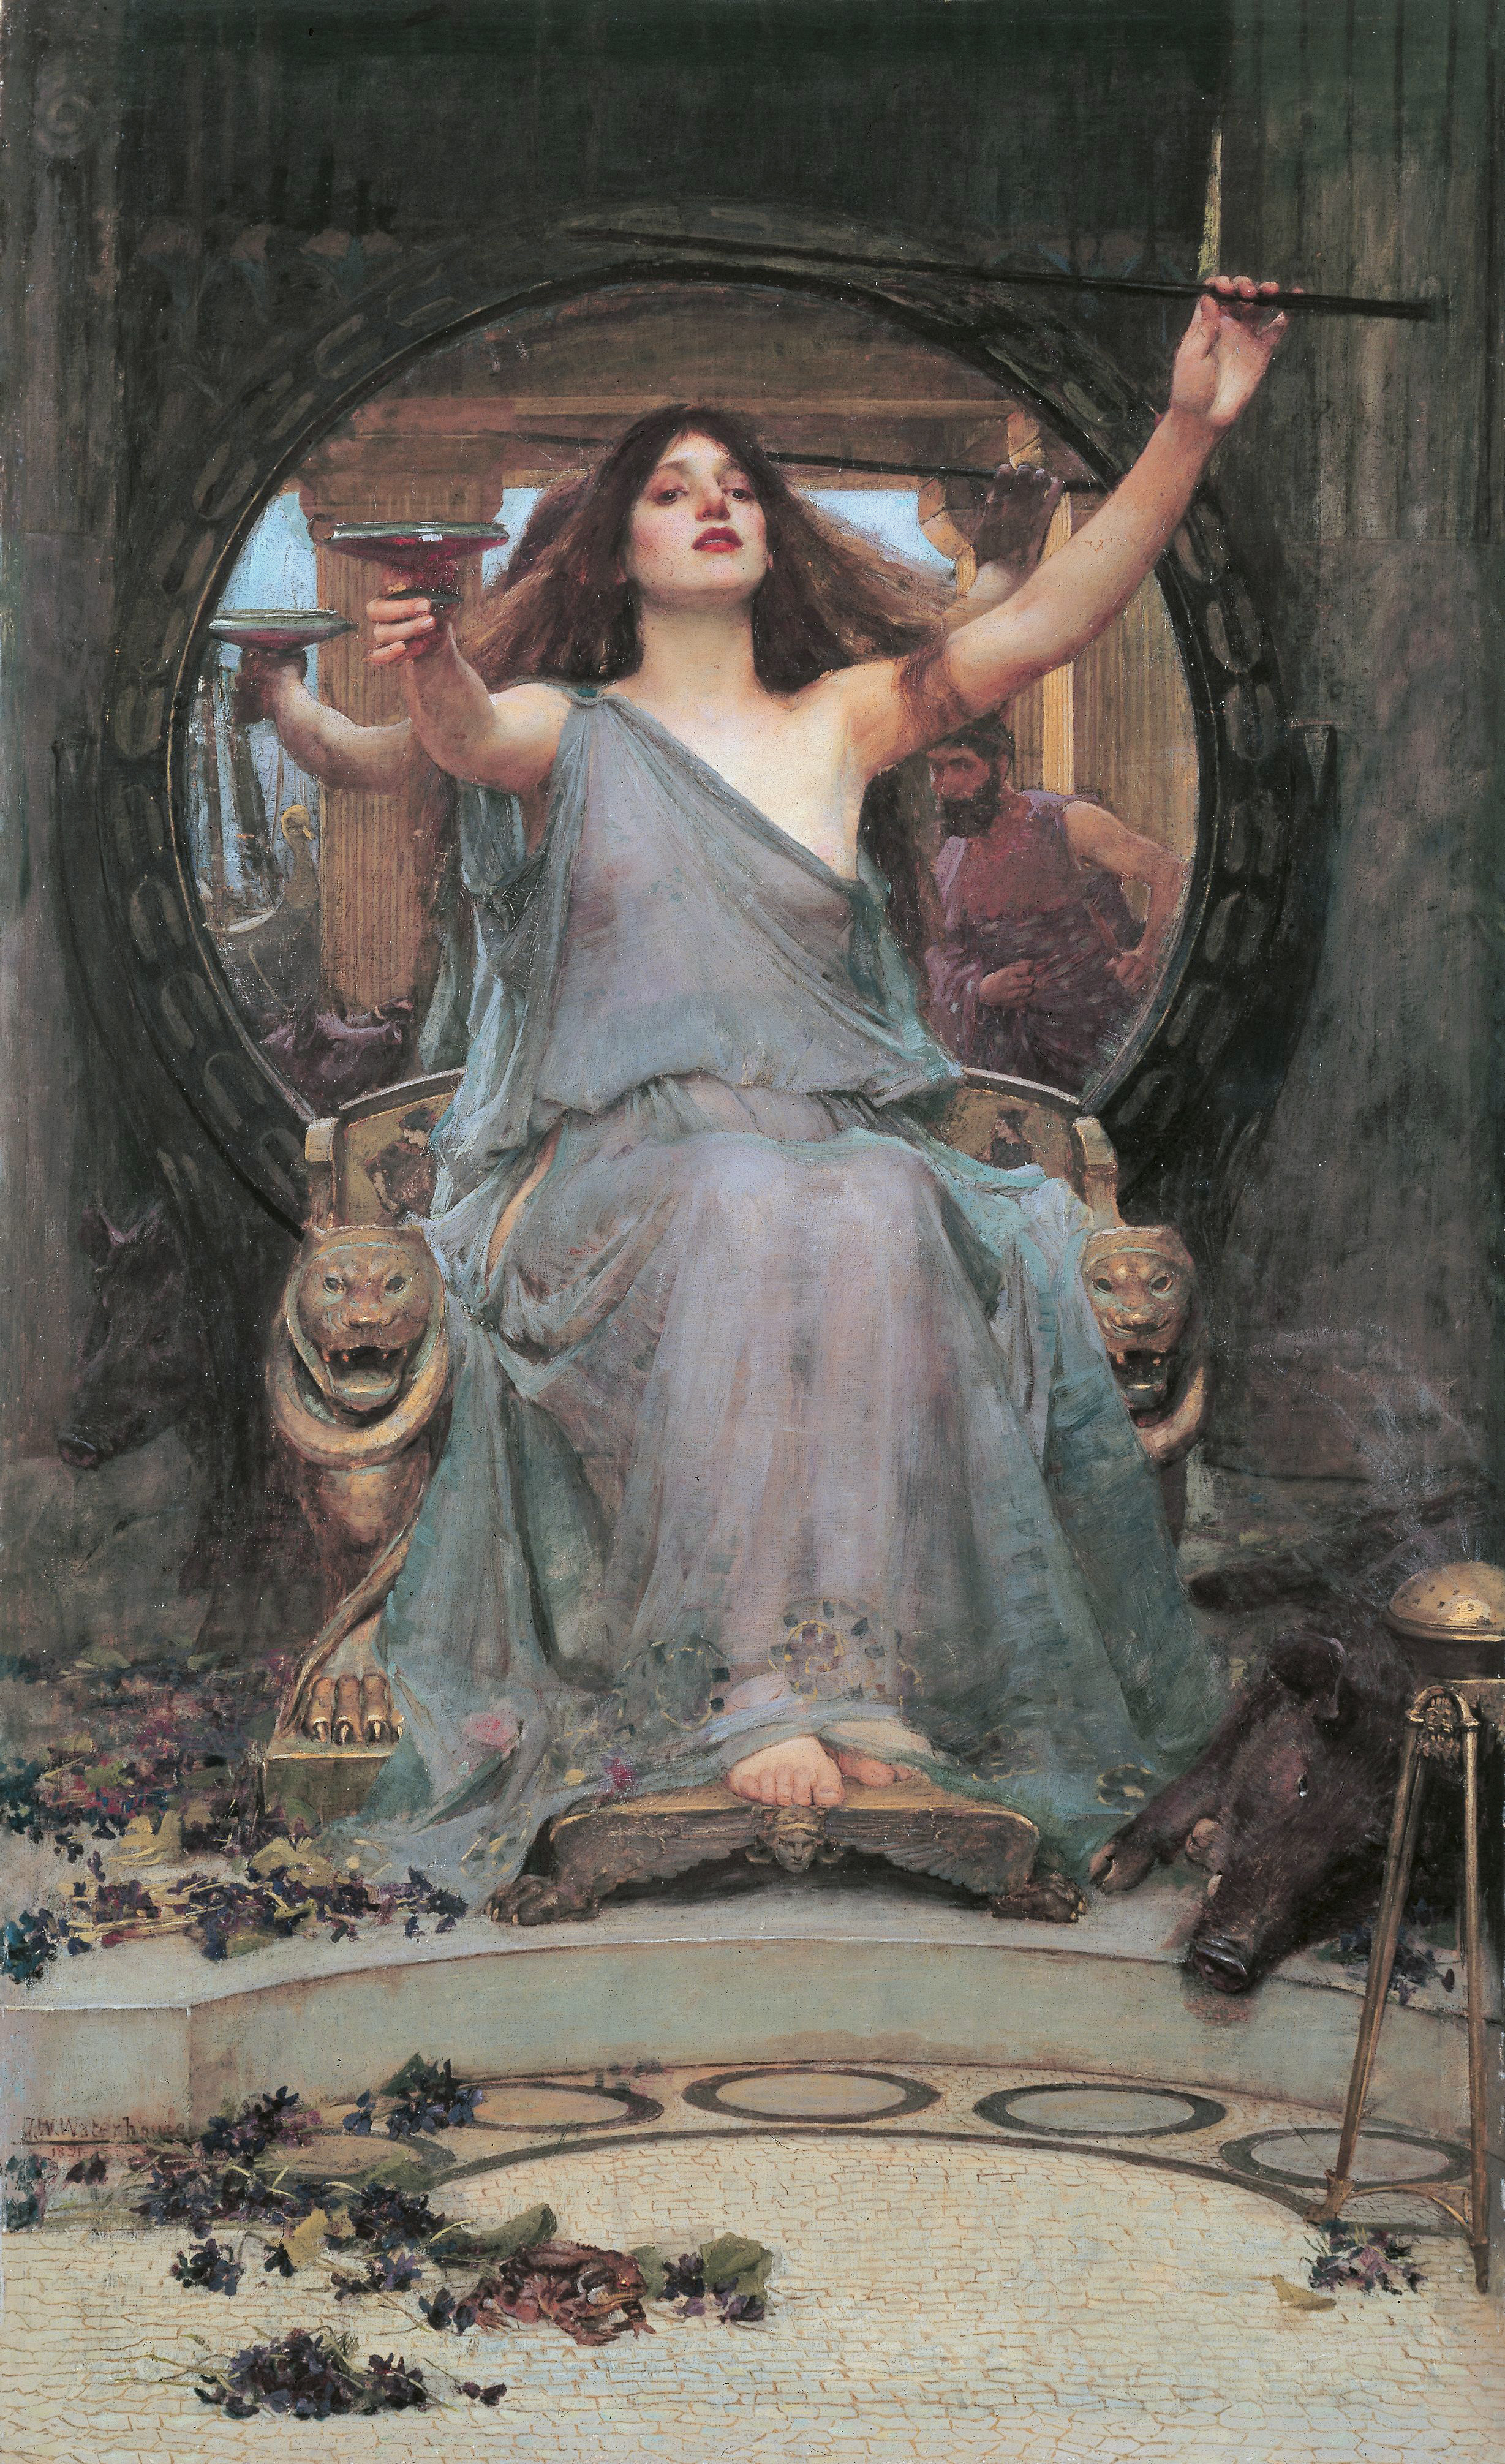 Circe Offering the Cup to Odysseus by John William Waterhouse (1849-1917); [Public domain] via Wikimedia Commons